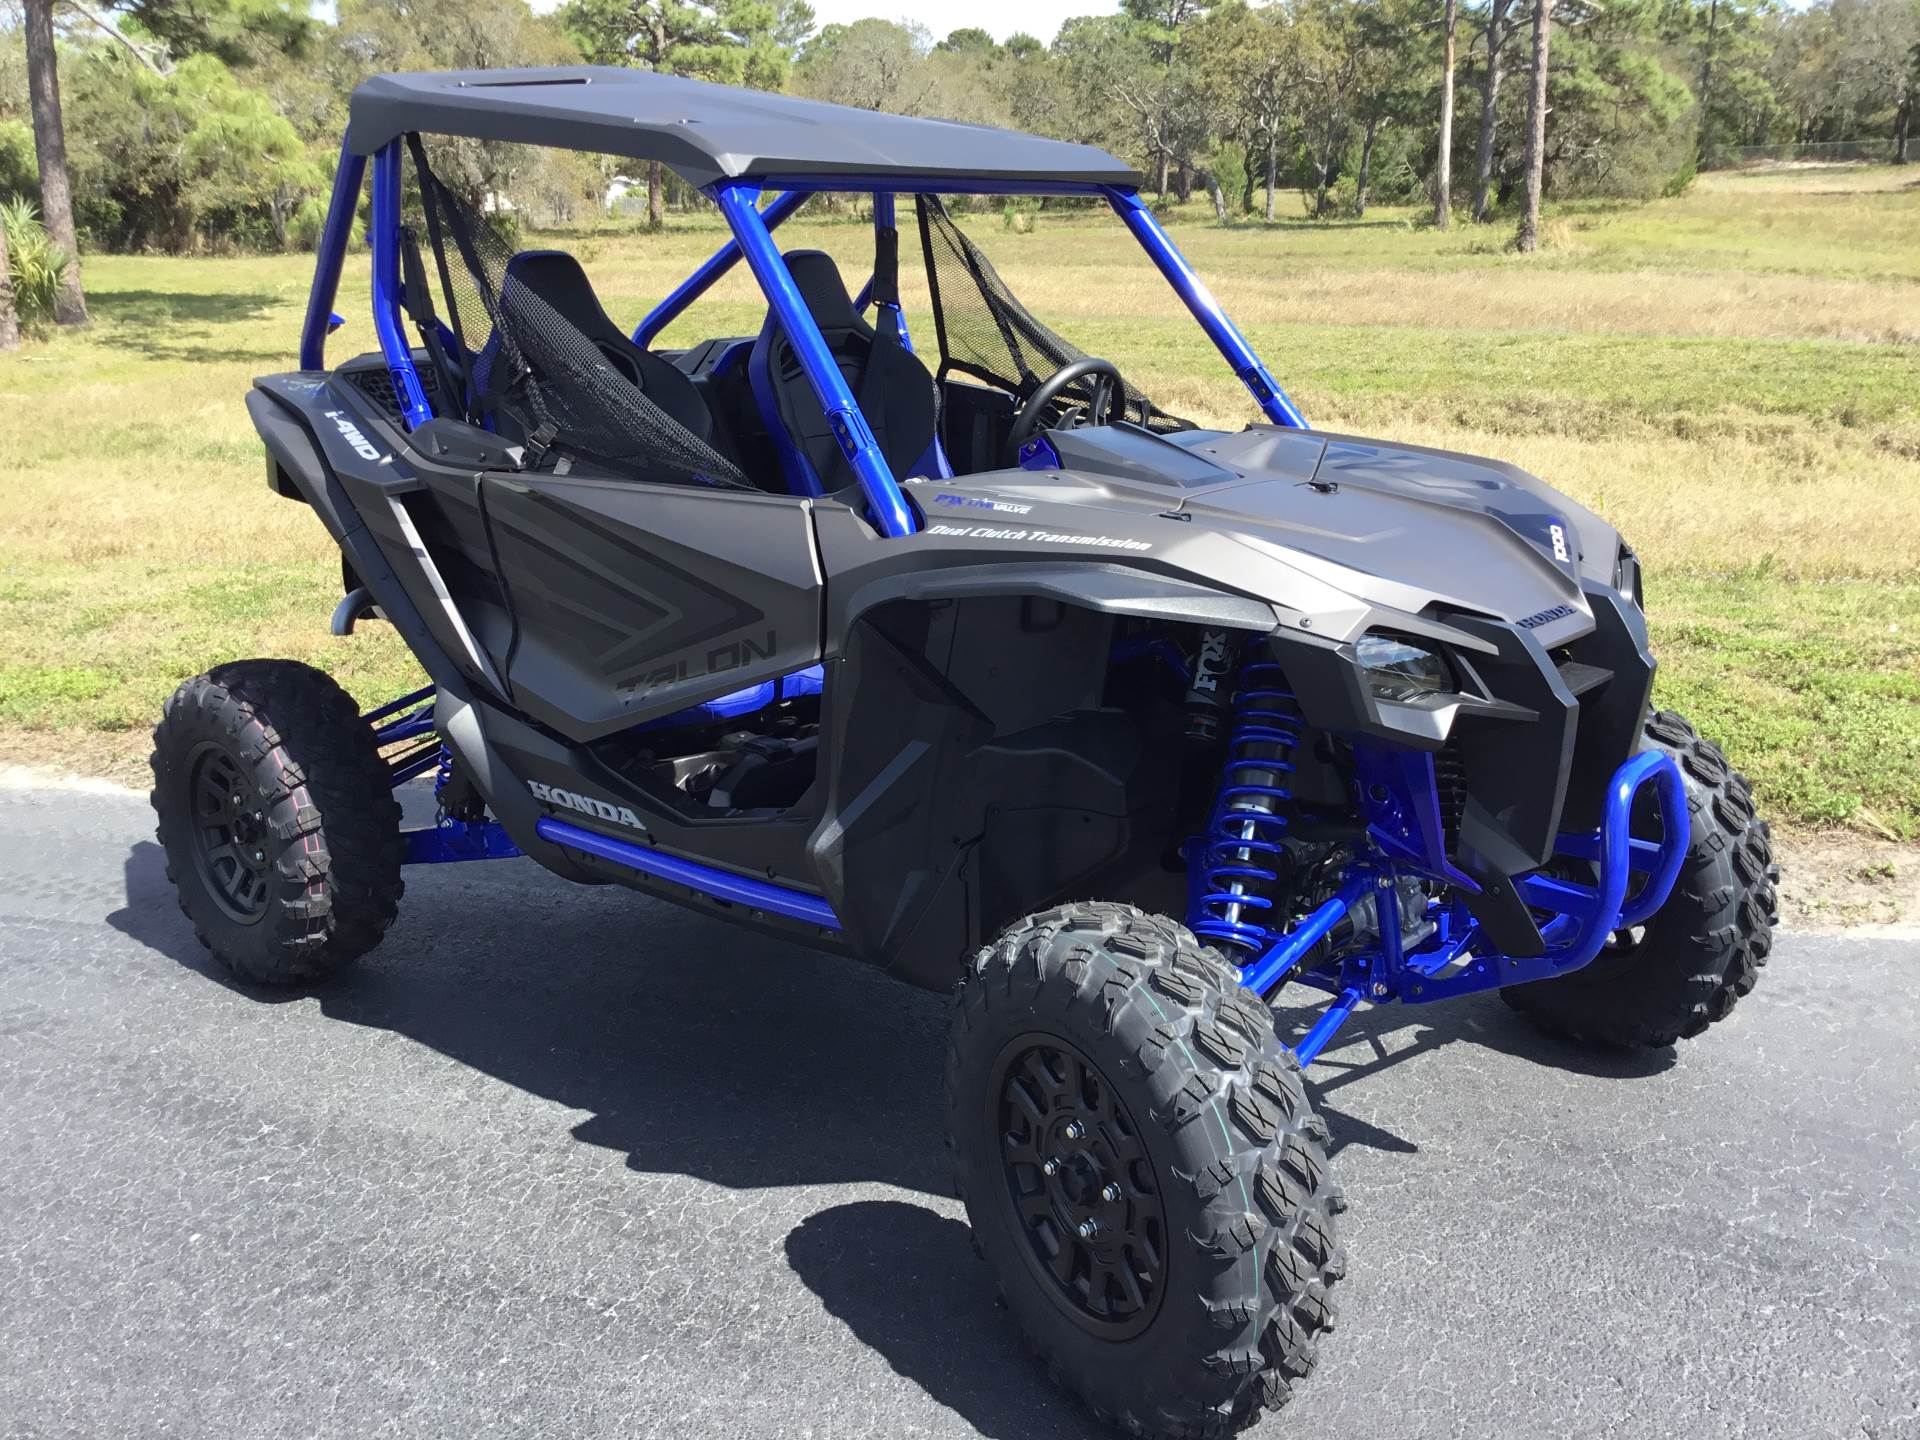 2021 Honda Talon 1000R FOX Live Valve in Hudson, Florida - Photo 9